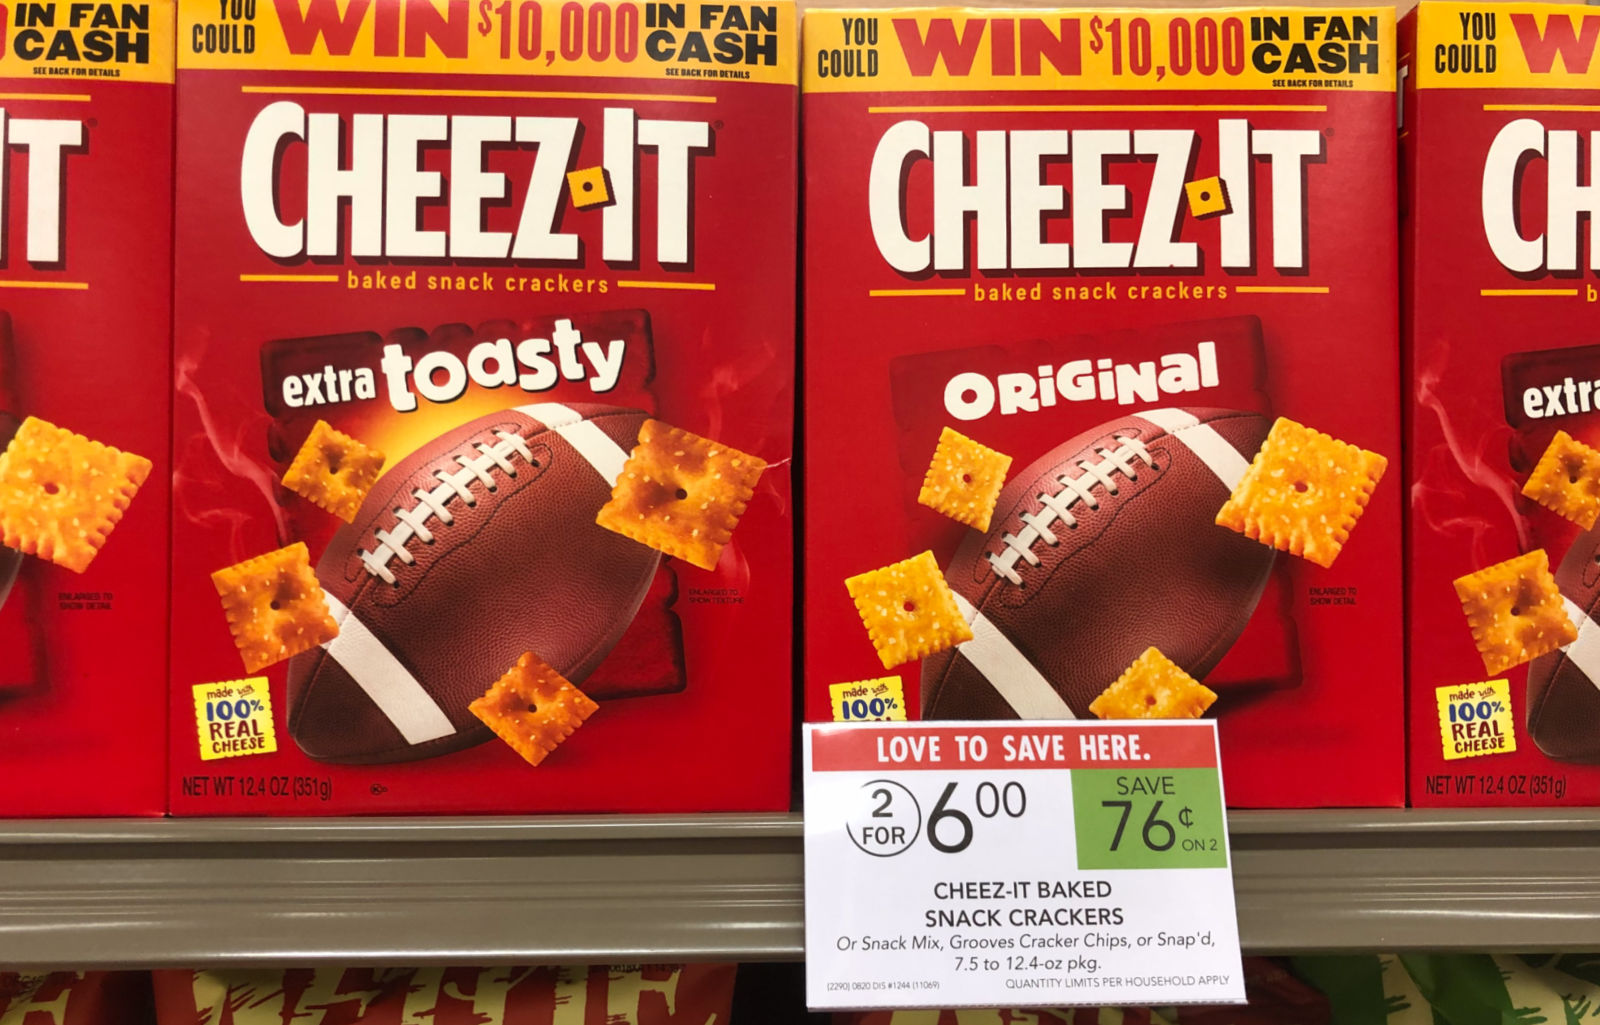 Be The Game Day MVP And Bring Home Fan Favorites Snacks - Save Now At Publix on I Heart Publix